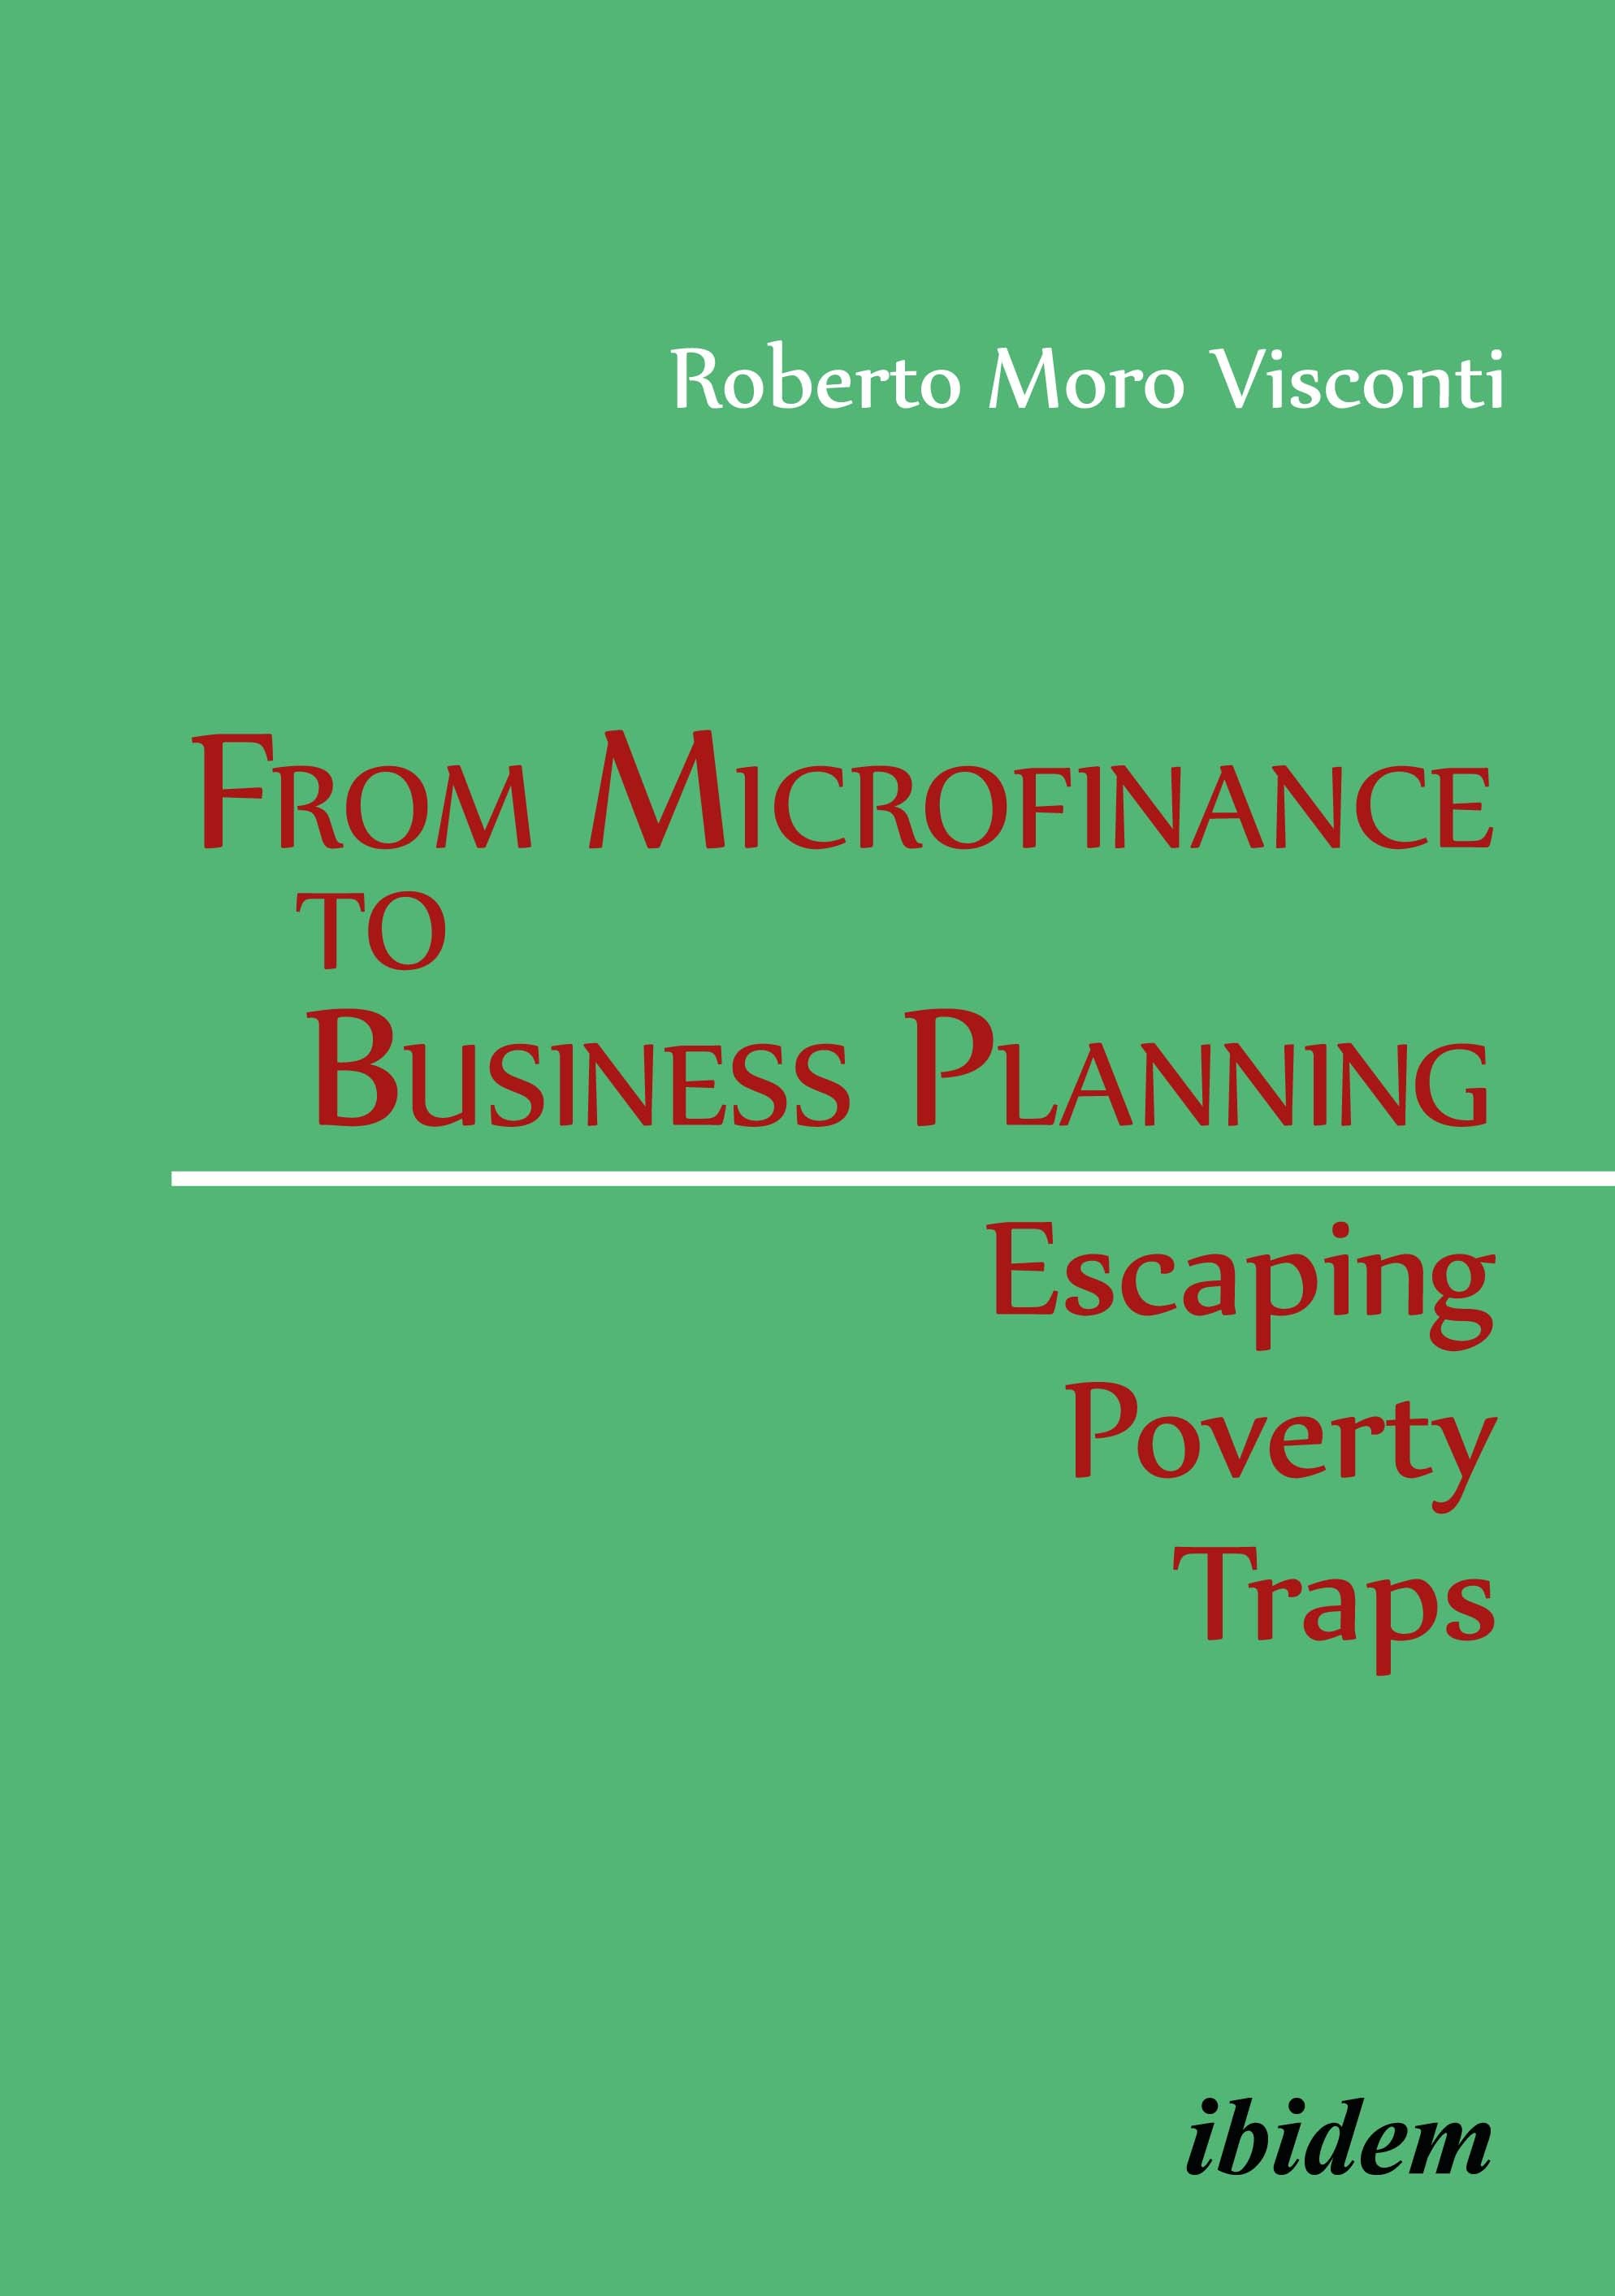 From Microfinance to Business Planning: Escaping Poverty Traps